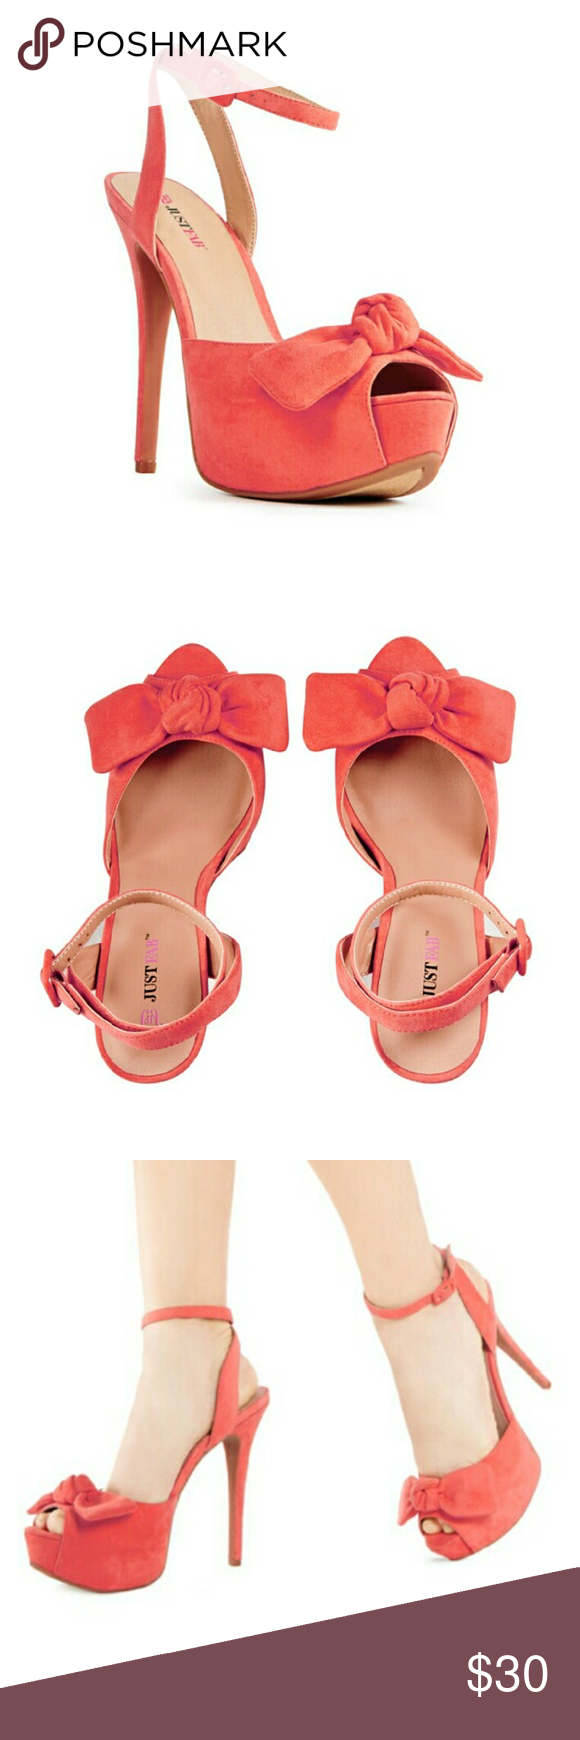 NIB Coral Peep Toe Heels Girly meets glamorous sophistication with this fresh pair. Peep toe with large accent bow. Stiletto heel with ankle strap. Shoes Heels